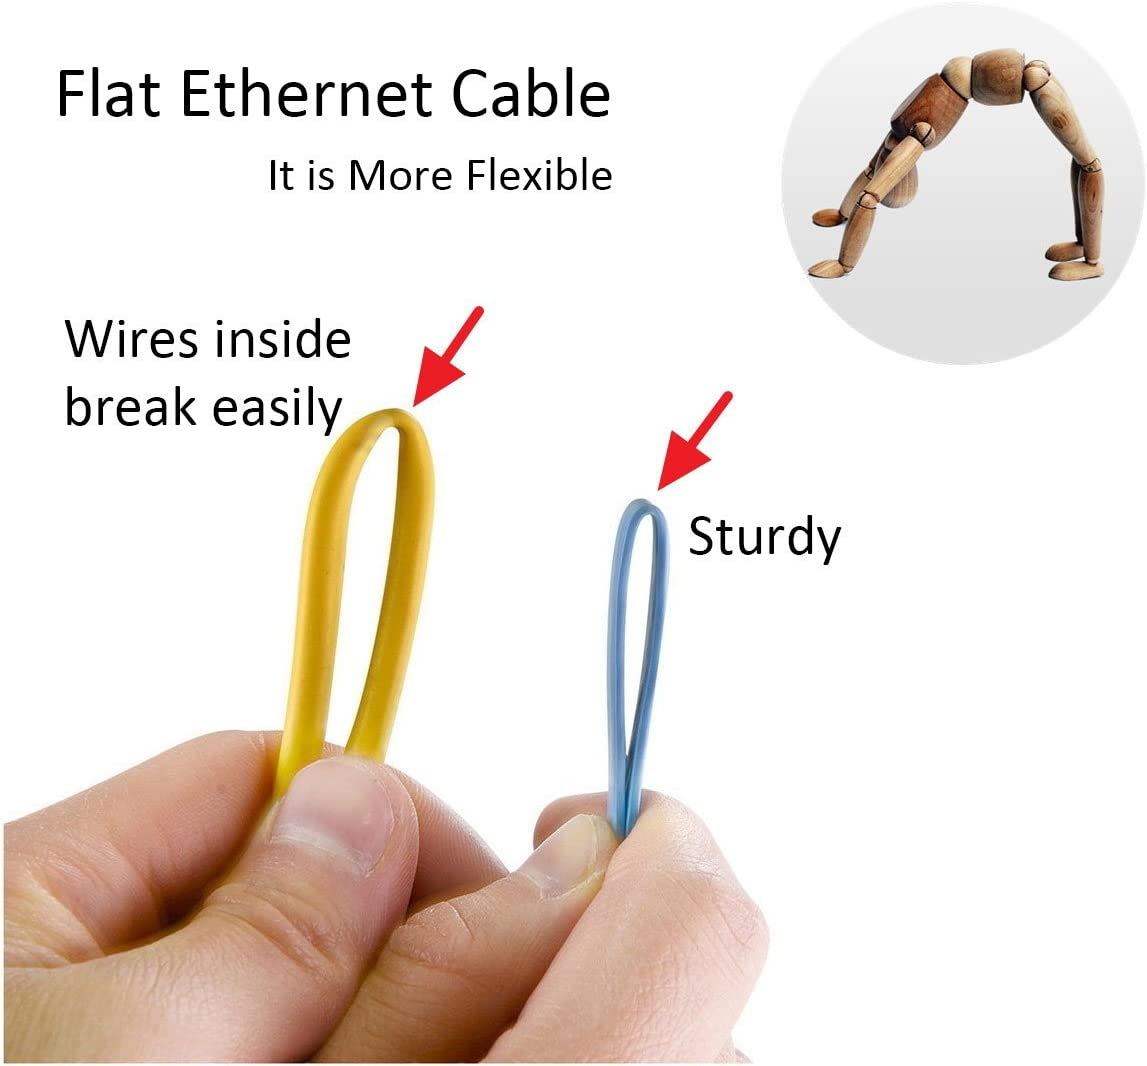 Internet Patch Cable Computer Networking Cord Black Slim Network Cable Flat Cat 6 Ethernet Patch Cable CelerCable 25 Feet Flat Ethernet Cable Cat6 25ft with Snagless RJ45 Connectors